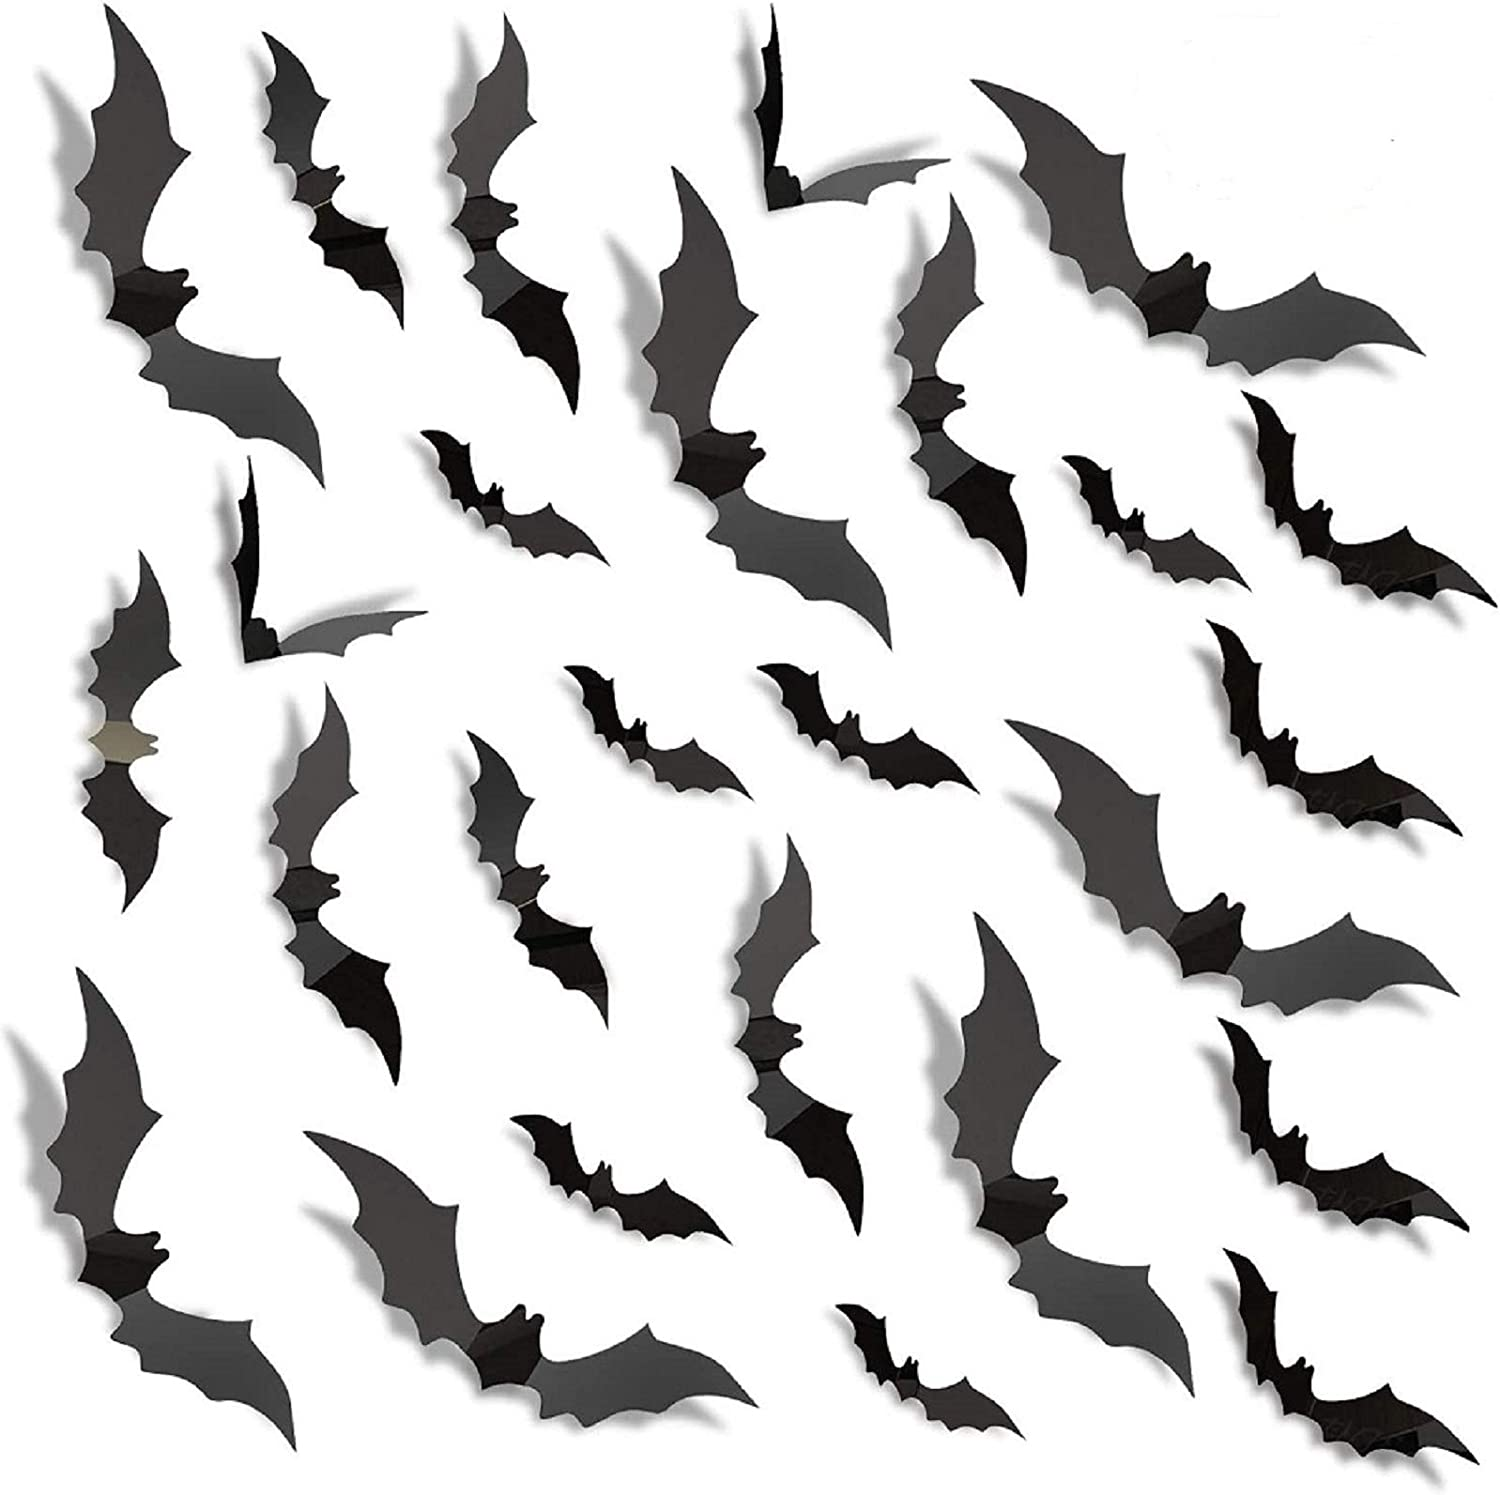 160PCS Halloween 3D Bats Sticker,Waterproof PVC Scary Black Removable Bats DIY for Door Wall Decor Home Office Window Indoor Party Supplies